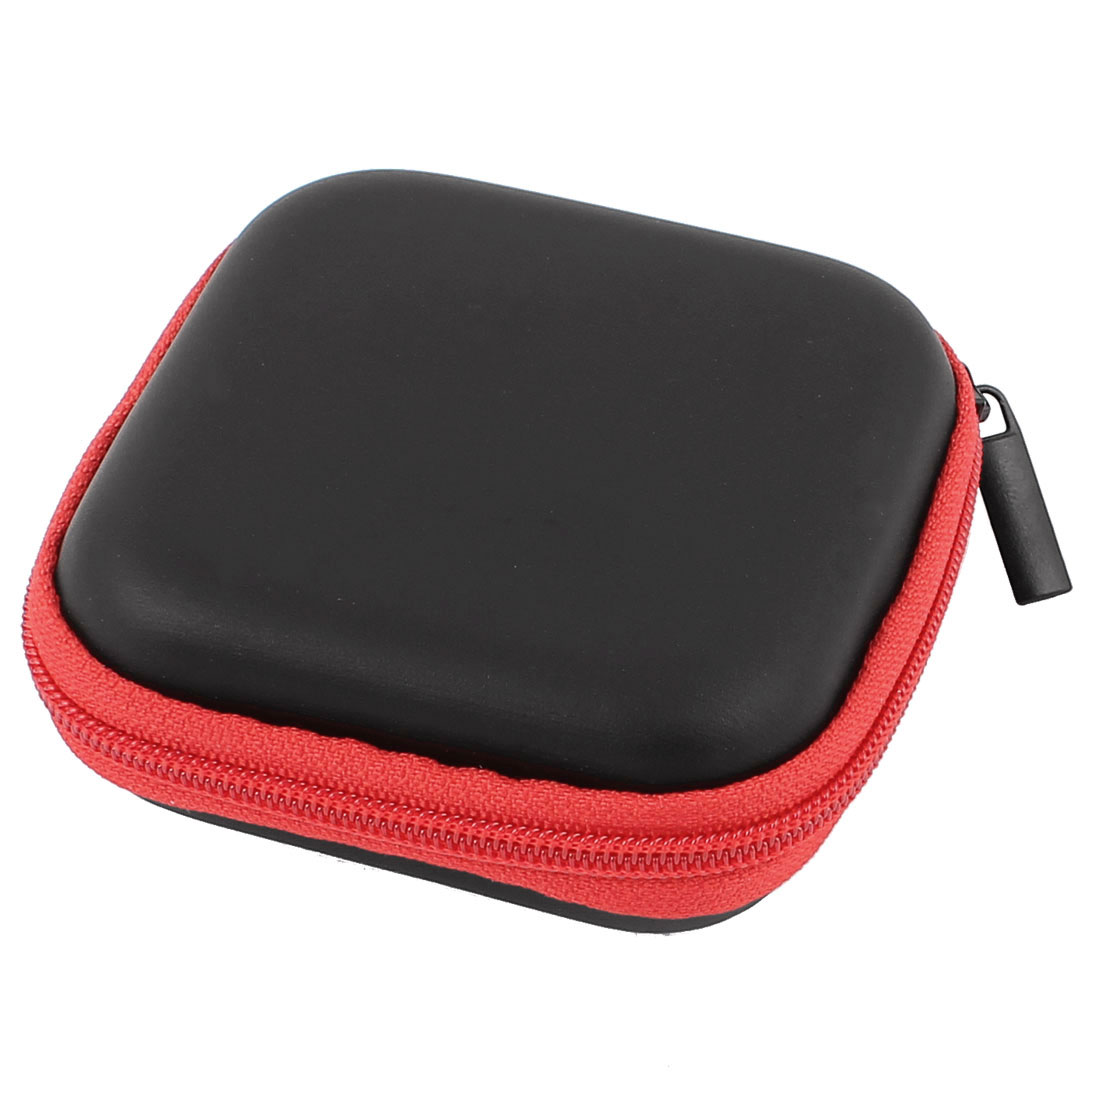 Earphone Cellphone Headphone Headset Earbuds Square Carrying Hold Case Pouch Storage Bag Box Pocket Red